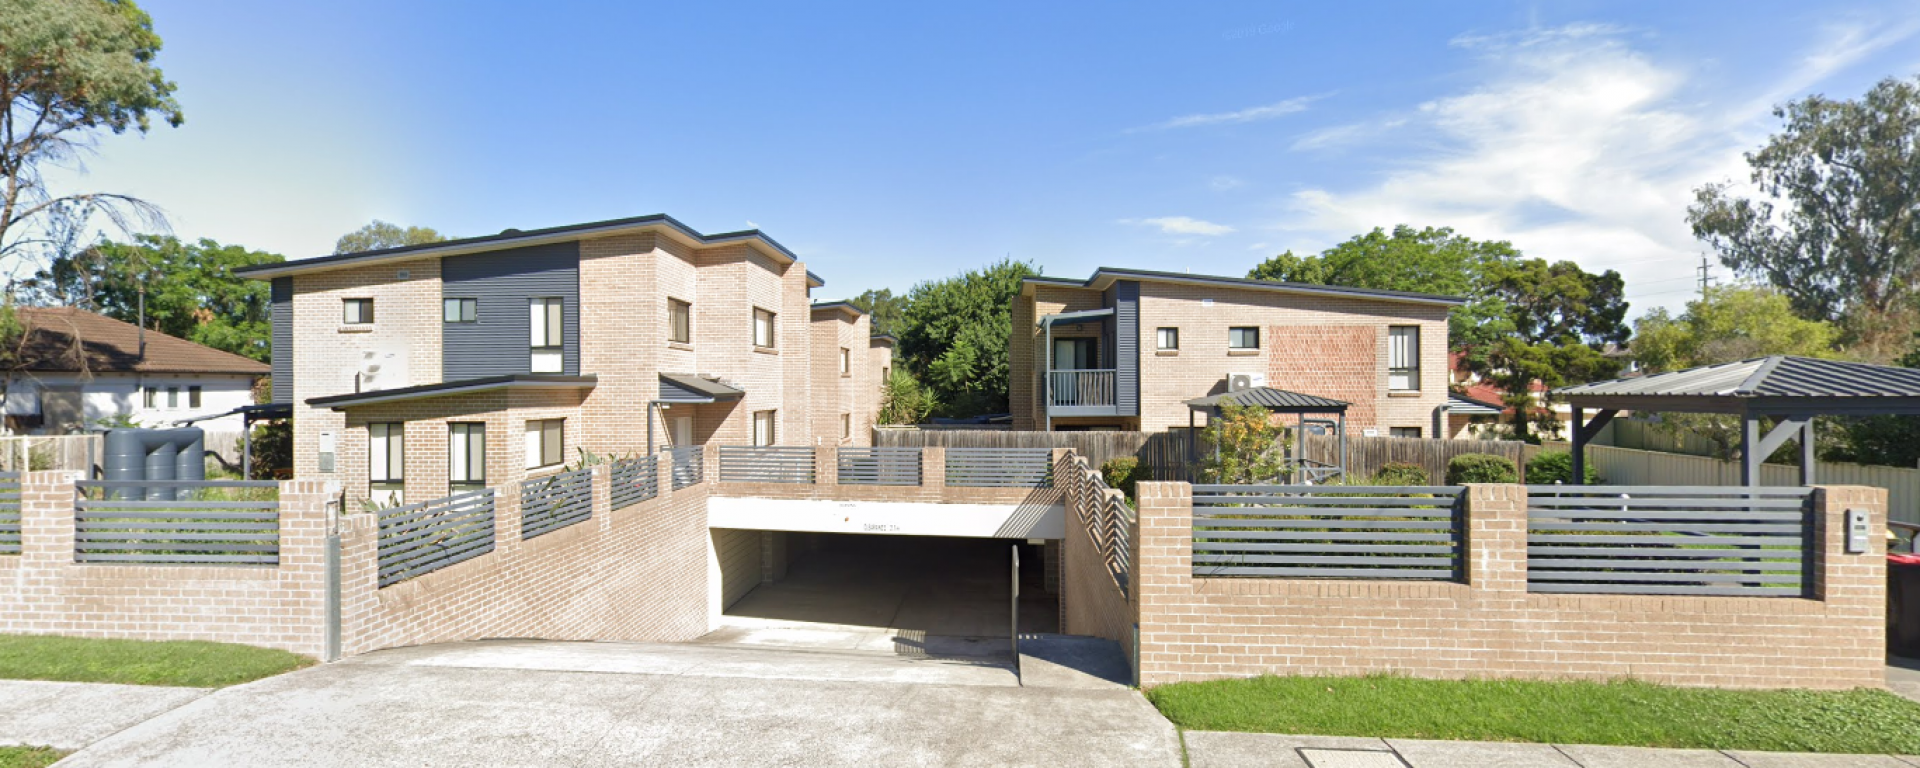 3 Rooms, House, Leased, Cox Street, 2 Bathrooms, Listing ID 1369, South Windsor, NSW, Australia,